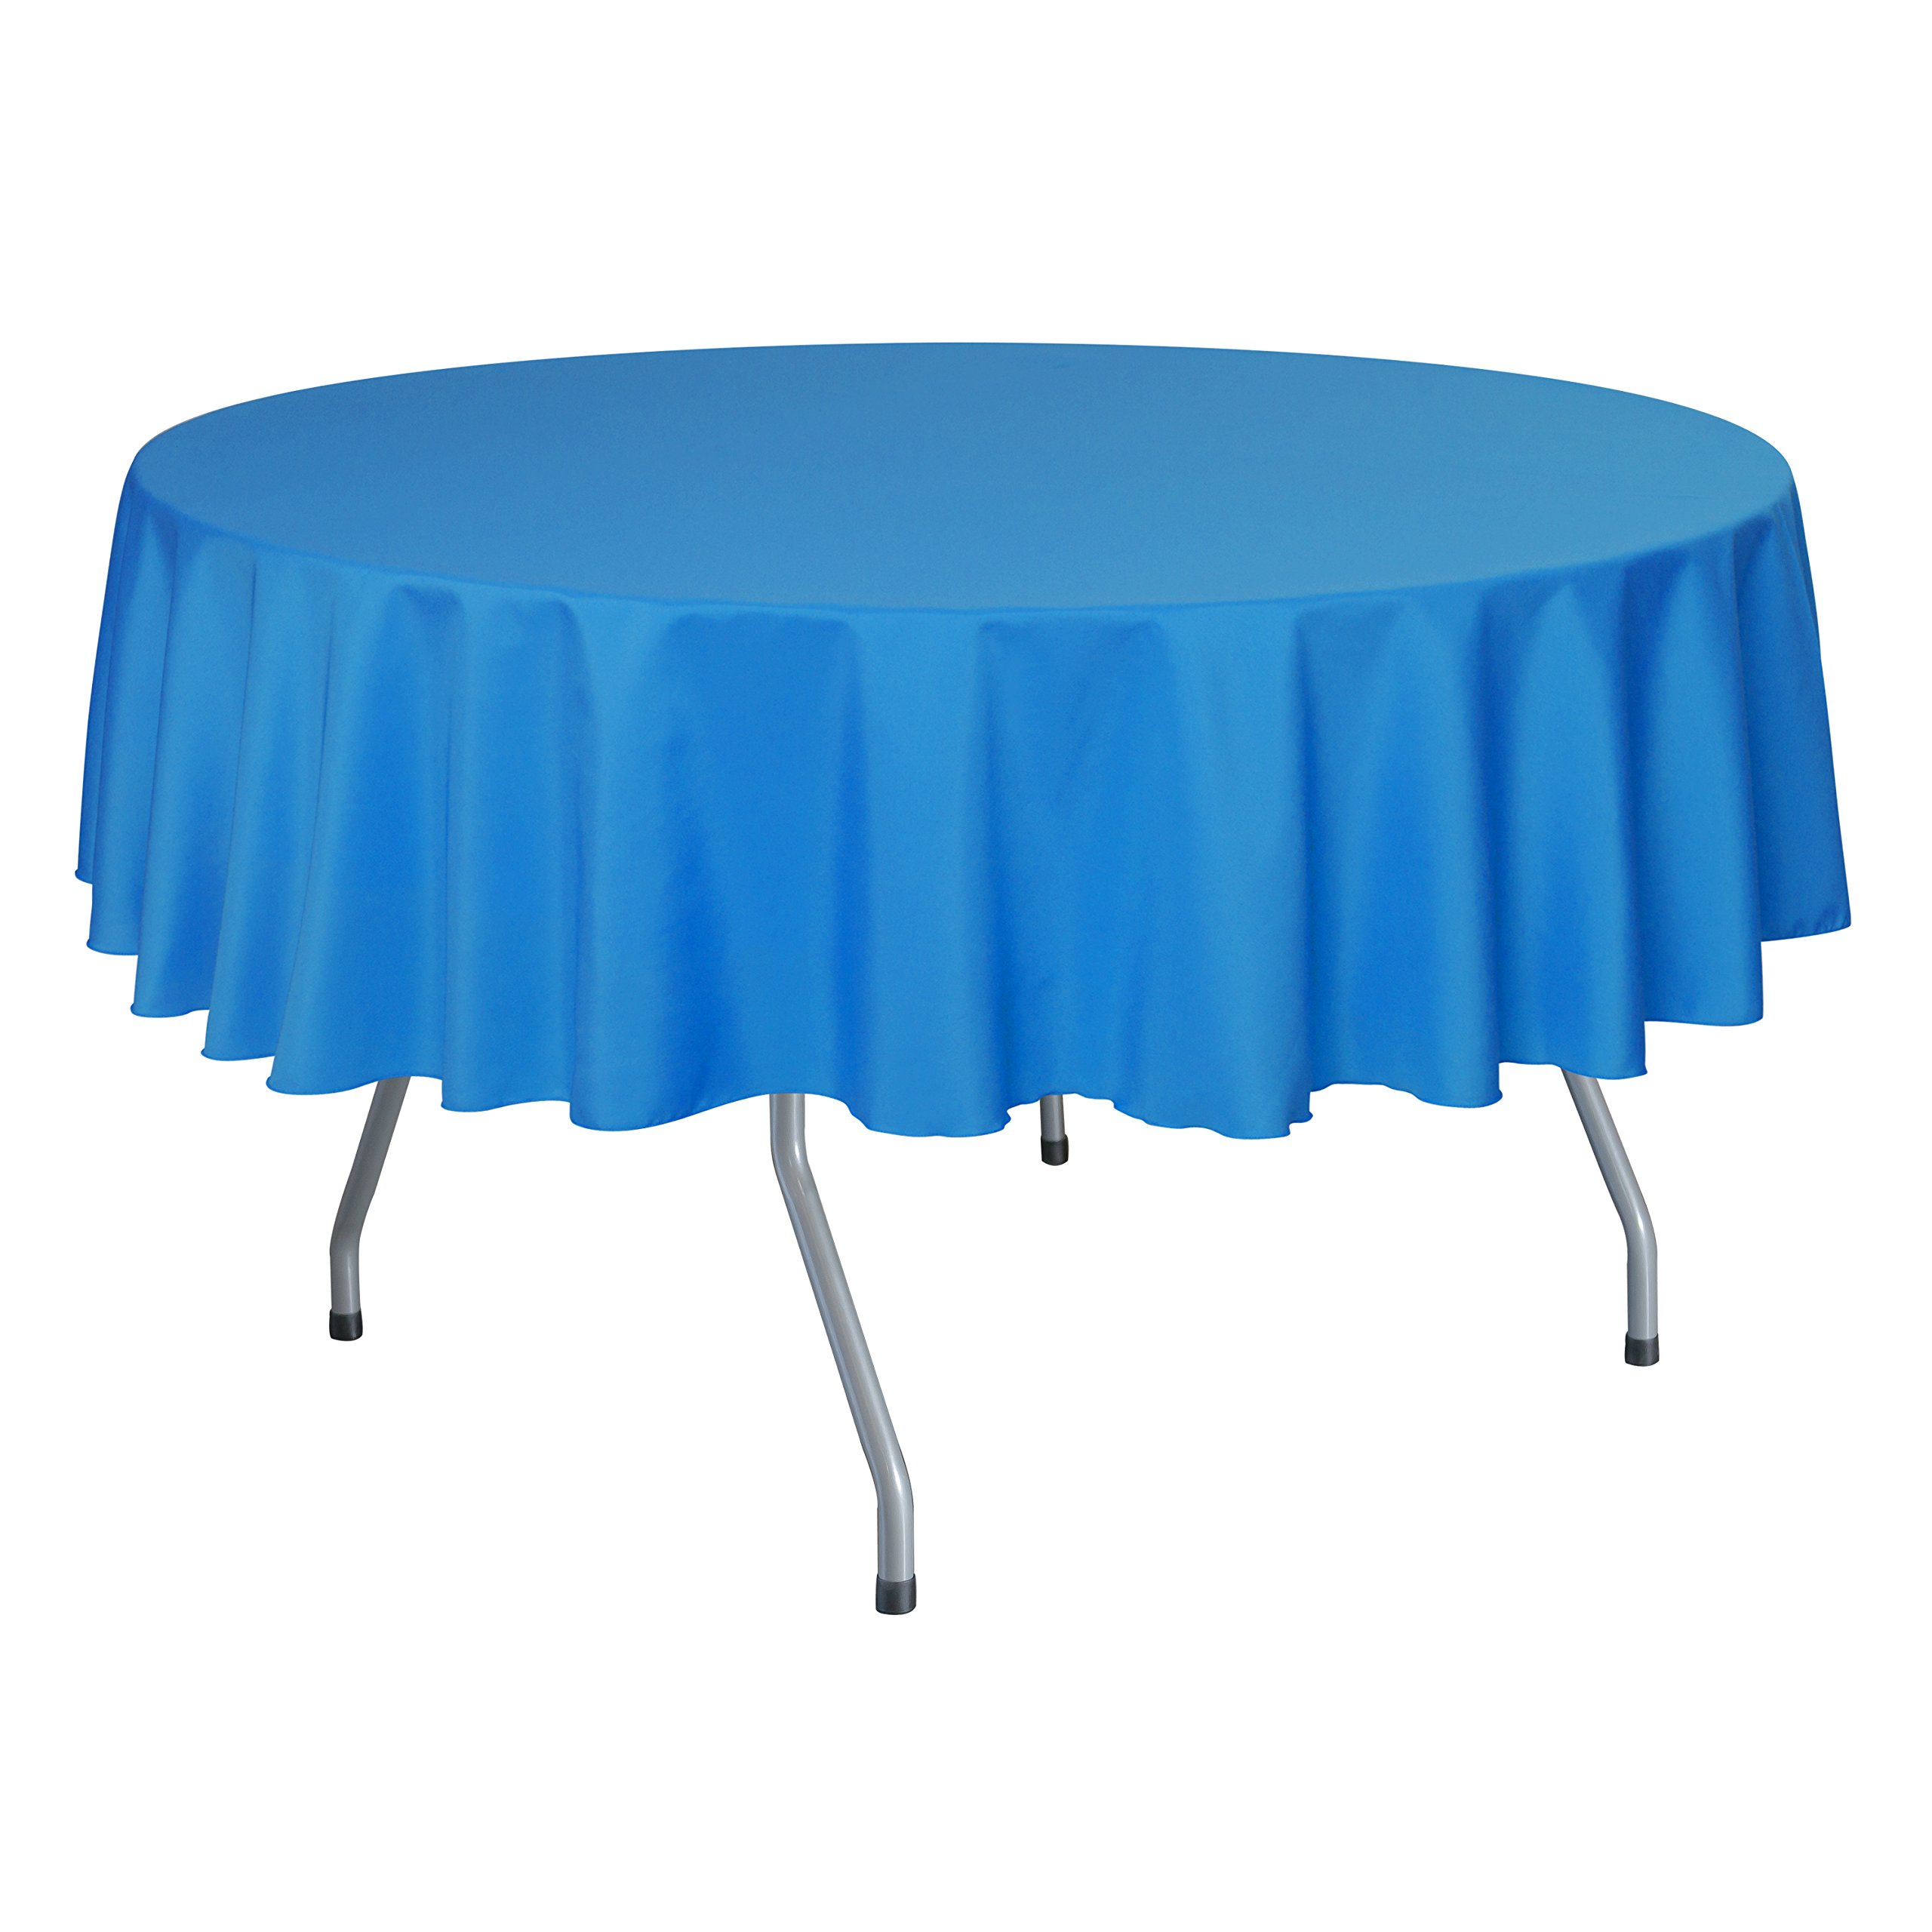 Ultimate Textile (10 Pack) 84-Inch Round Polyester Linen Tablecloth - for Wedding, Restaurant or Banquet use, Cobalt Blue